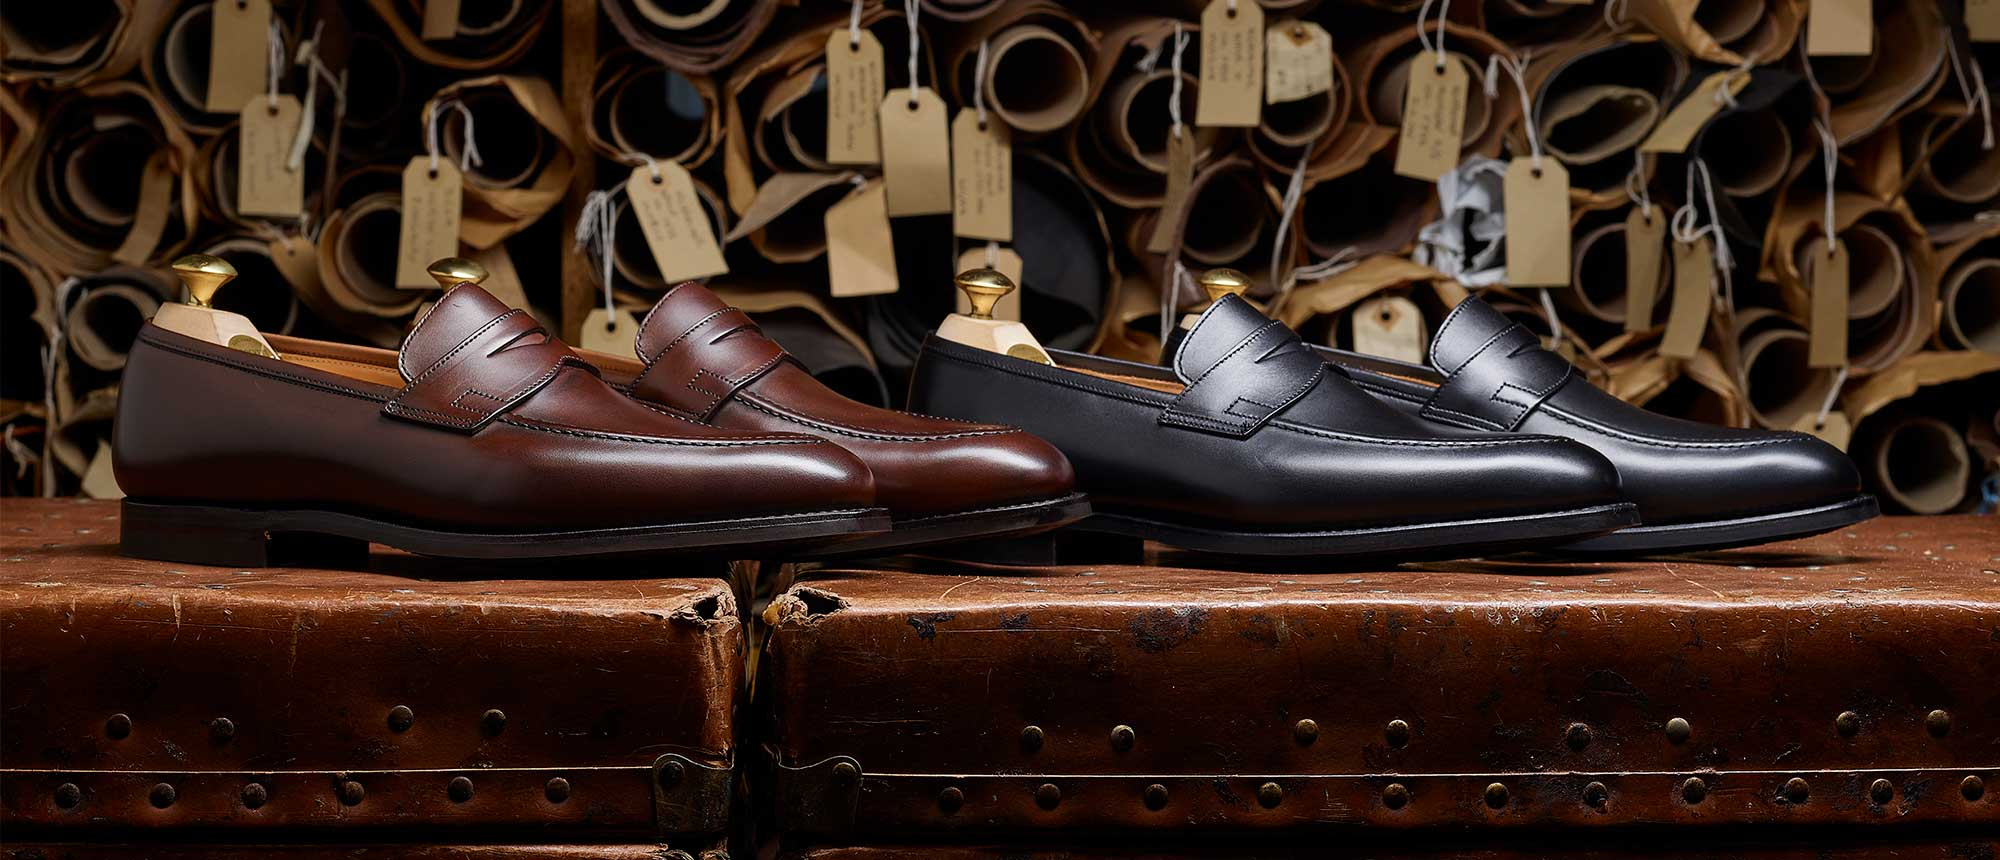 Crockett & Jones - The Essentials... Dress Up